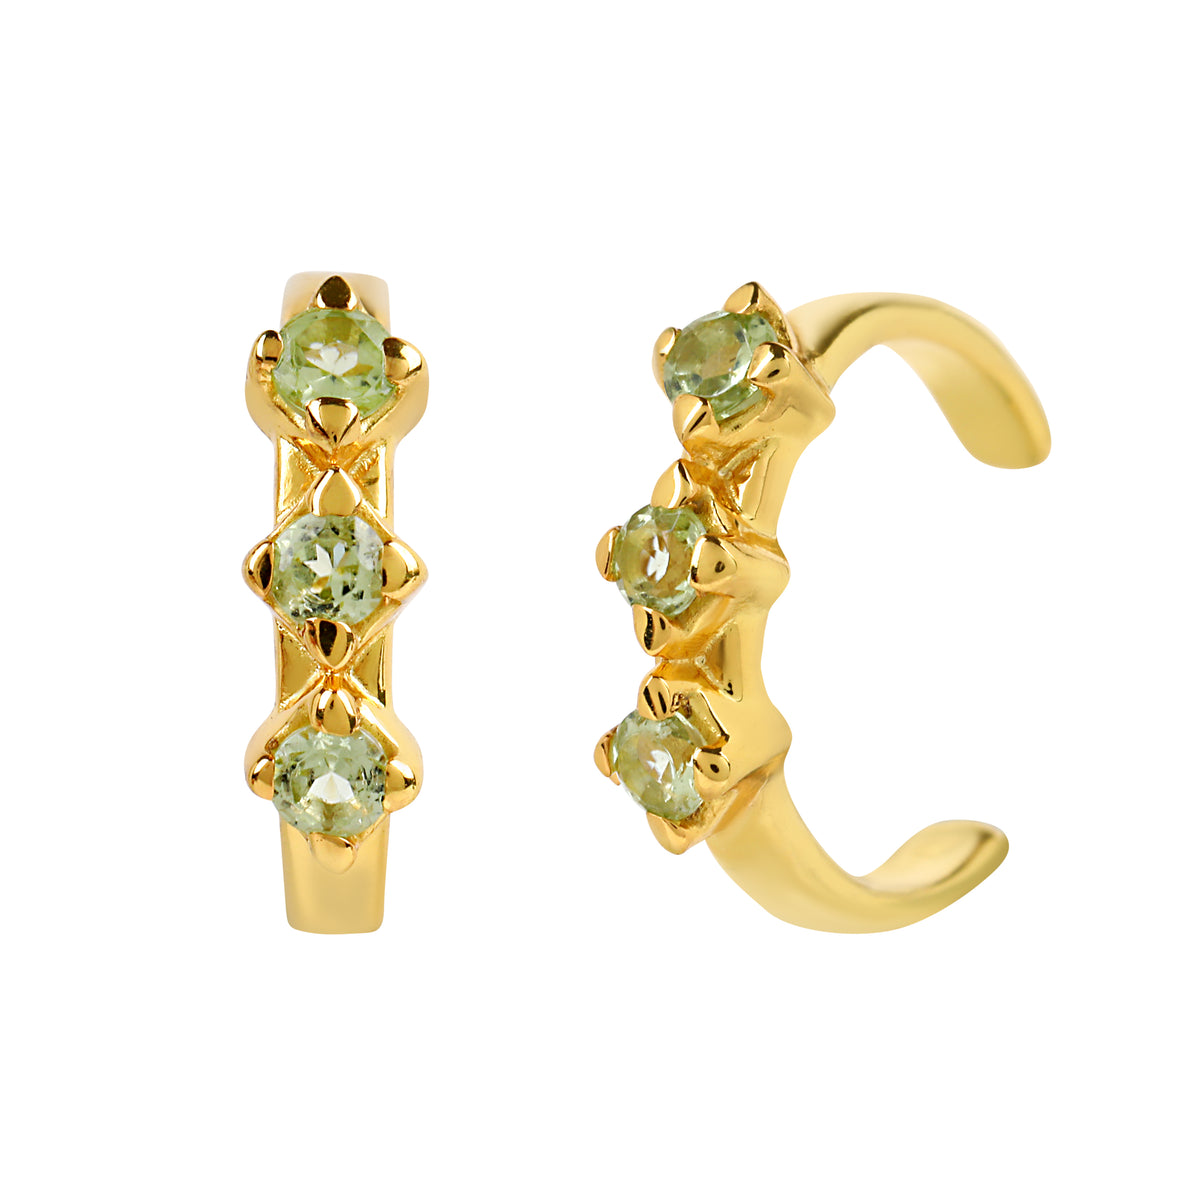 Reconceptions Ear Cuffs - Gold - Green